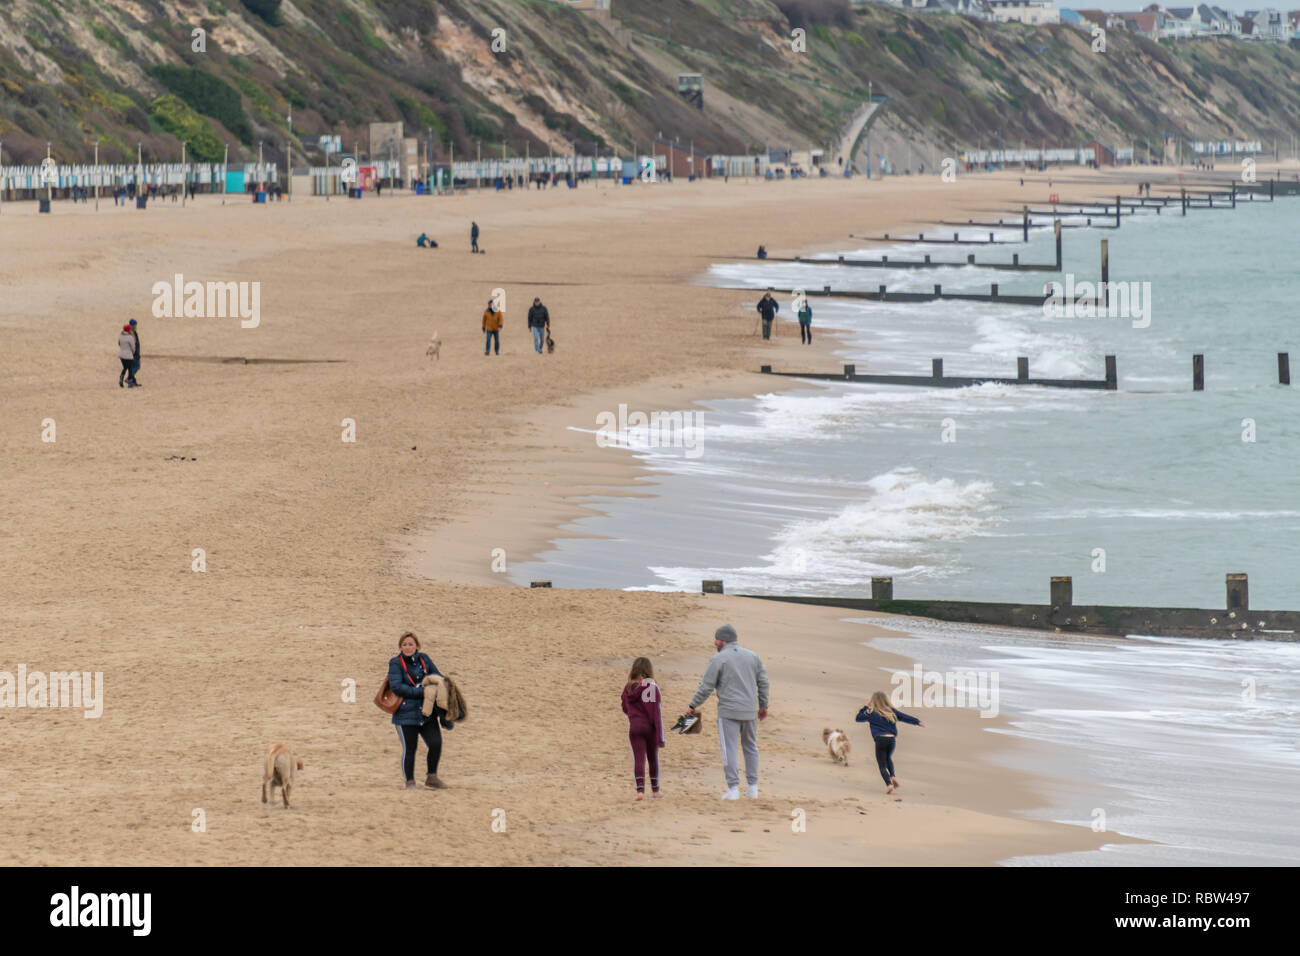 Bournemouth, Dorset, UK. 12th January 2019. Dog walkers wrap up warm to take their dogs out on the beach in Bournemouth on a winters day. Credit: Thomas Faull/Alamy Live News Stock Photo